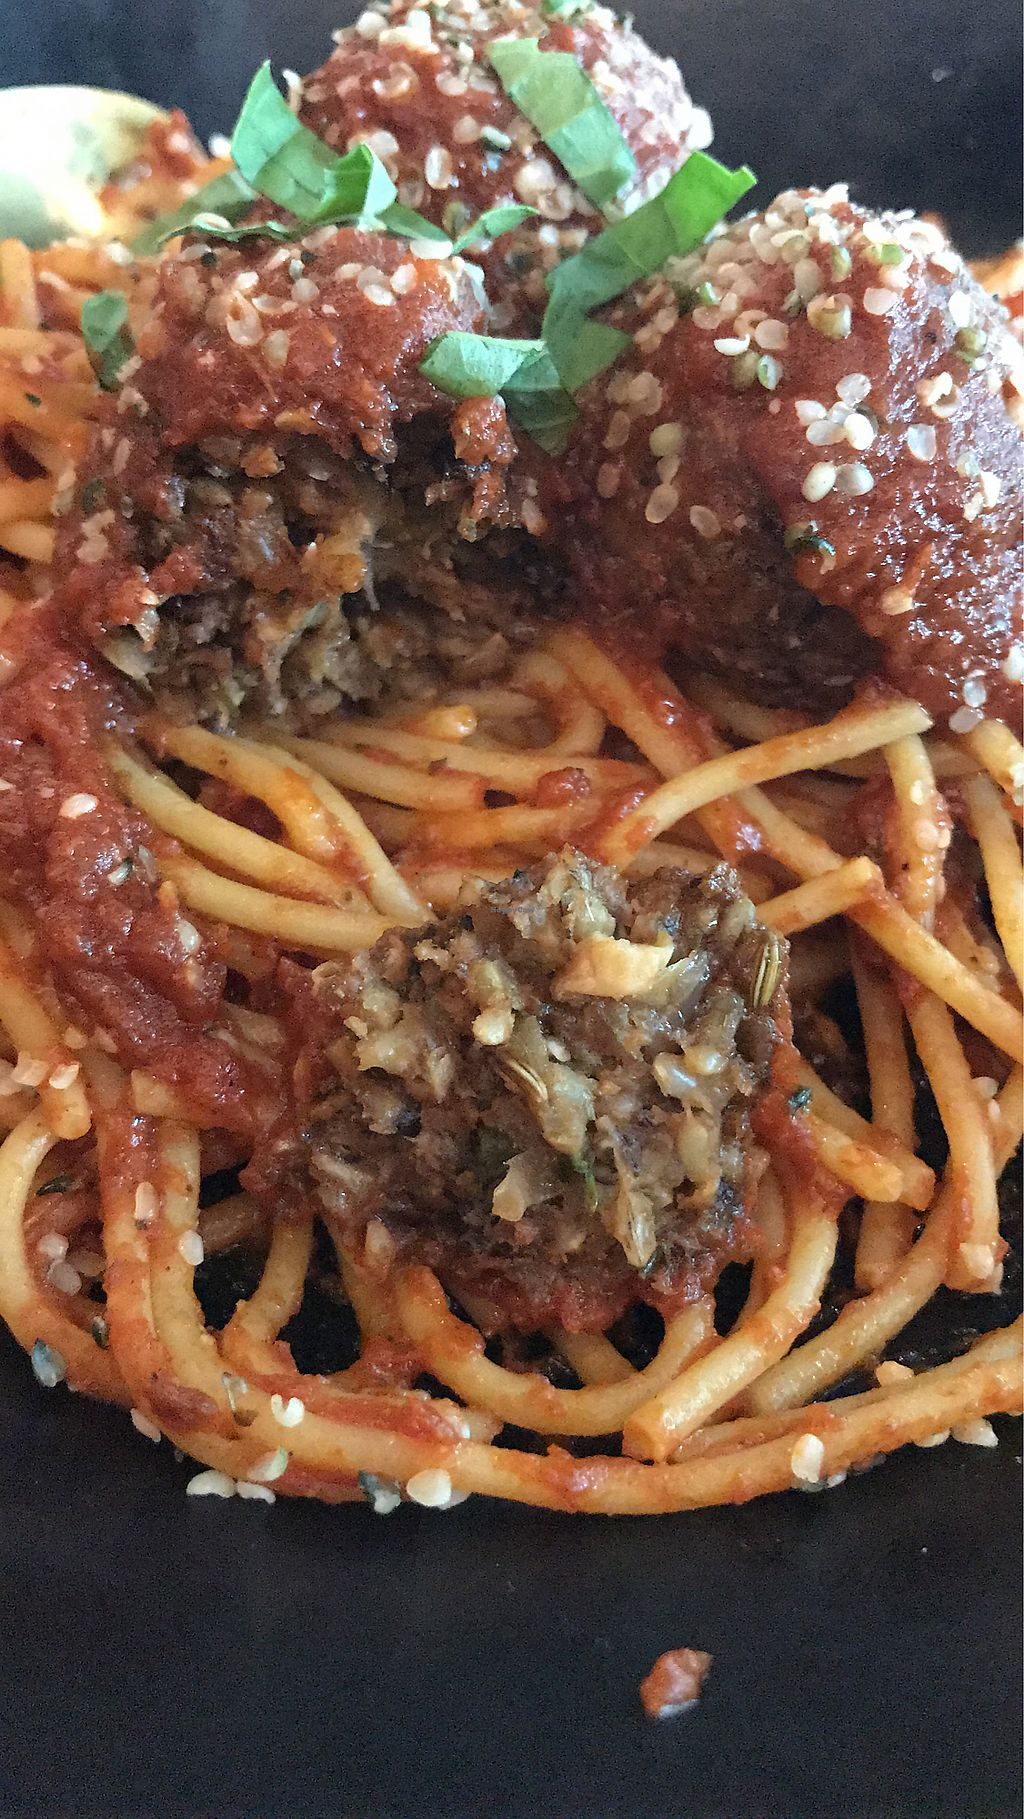 "Photo of GLAM Vegan  by <a href=""/members/profile/chivvy"">chivvy</a> <br/>meatless meatballs and spaghetti  <br/> August 26, 2017  - <a href='/contact/abuse/image/95253/297464'>Report</a>"